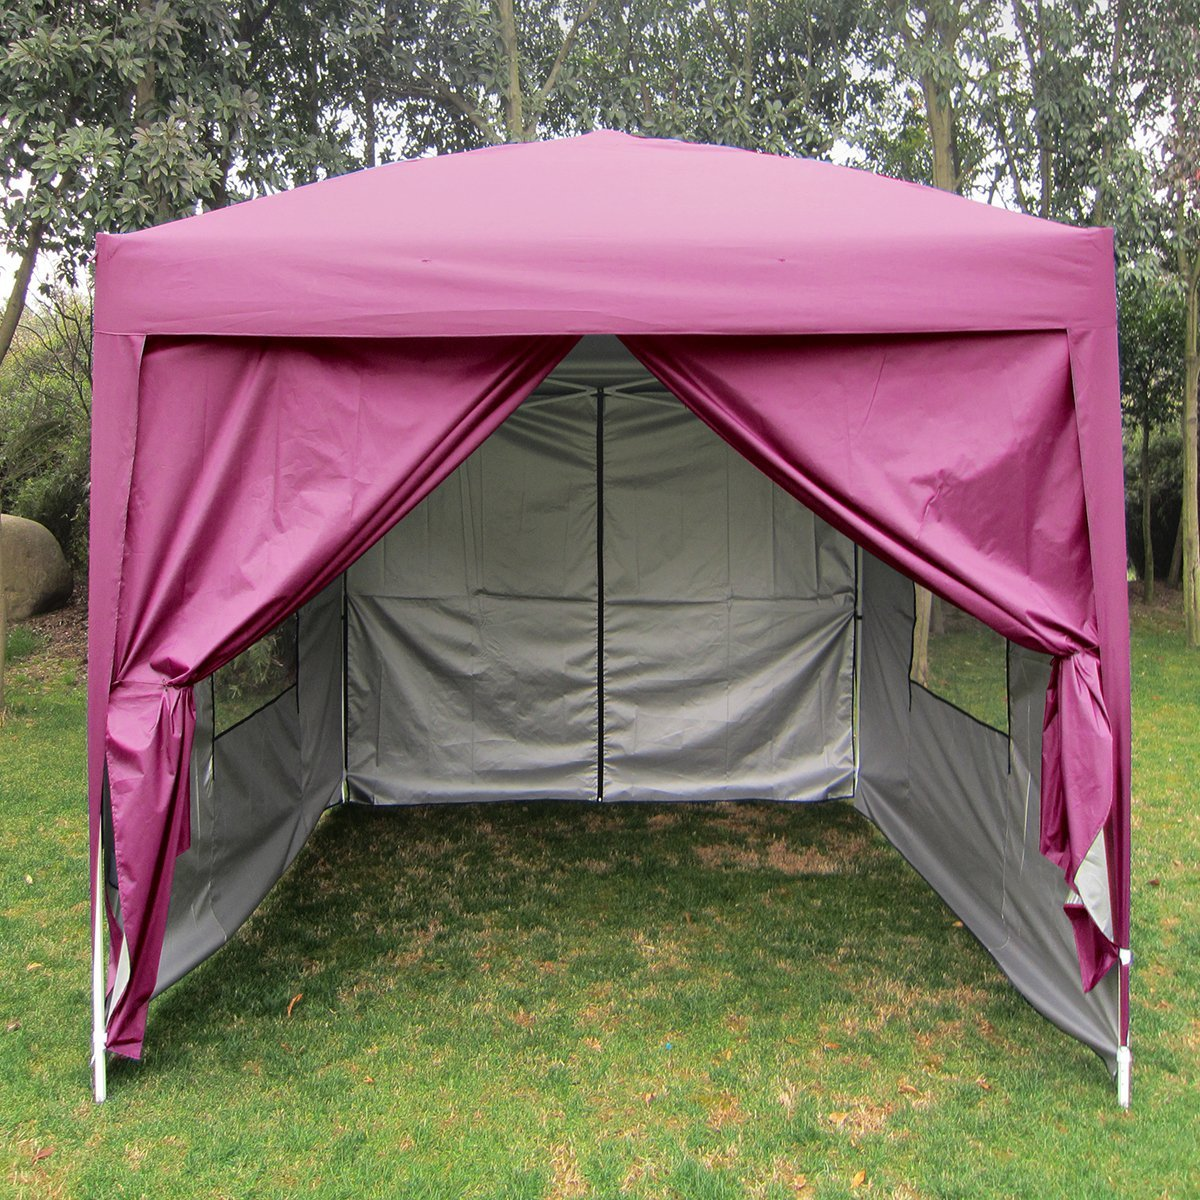 Quictent Privacy 8x8 Mesh Curtain EZ Pop Up Canopy Party Tent Gazebo 100% Waterproof with Sidewalls Pink - Walmart.com & Quictent Privacy 8x8 Mesh Curtain EZ Pop Up Canopy Party Tent Gazebo ...